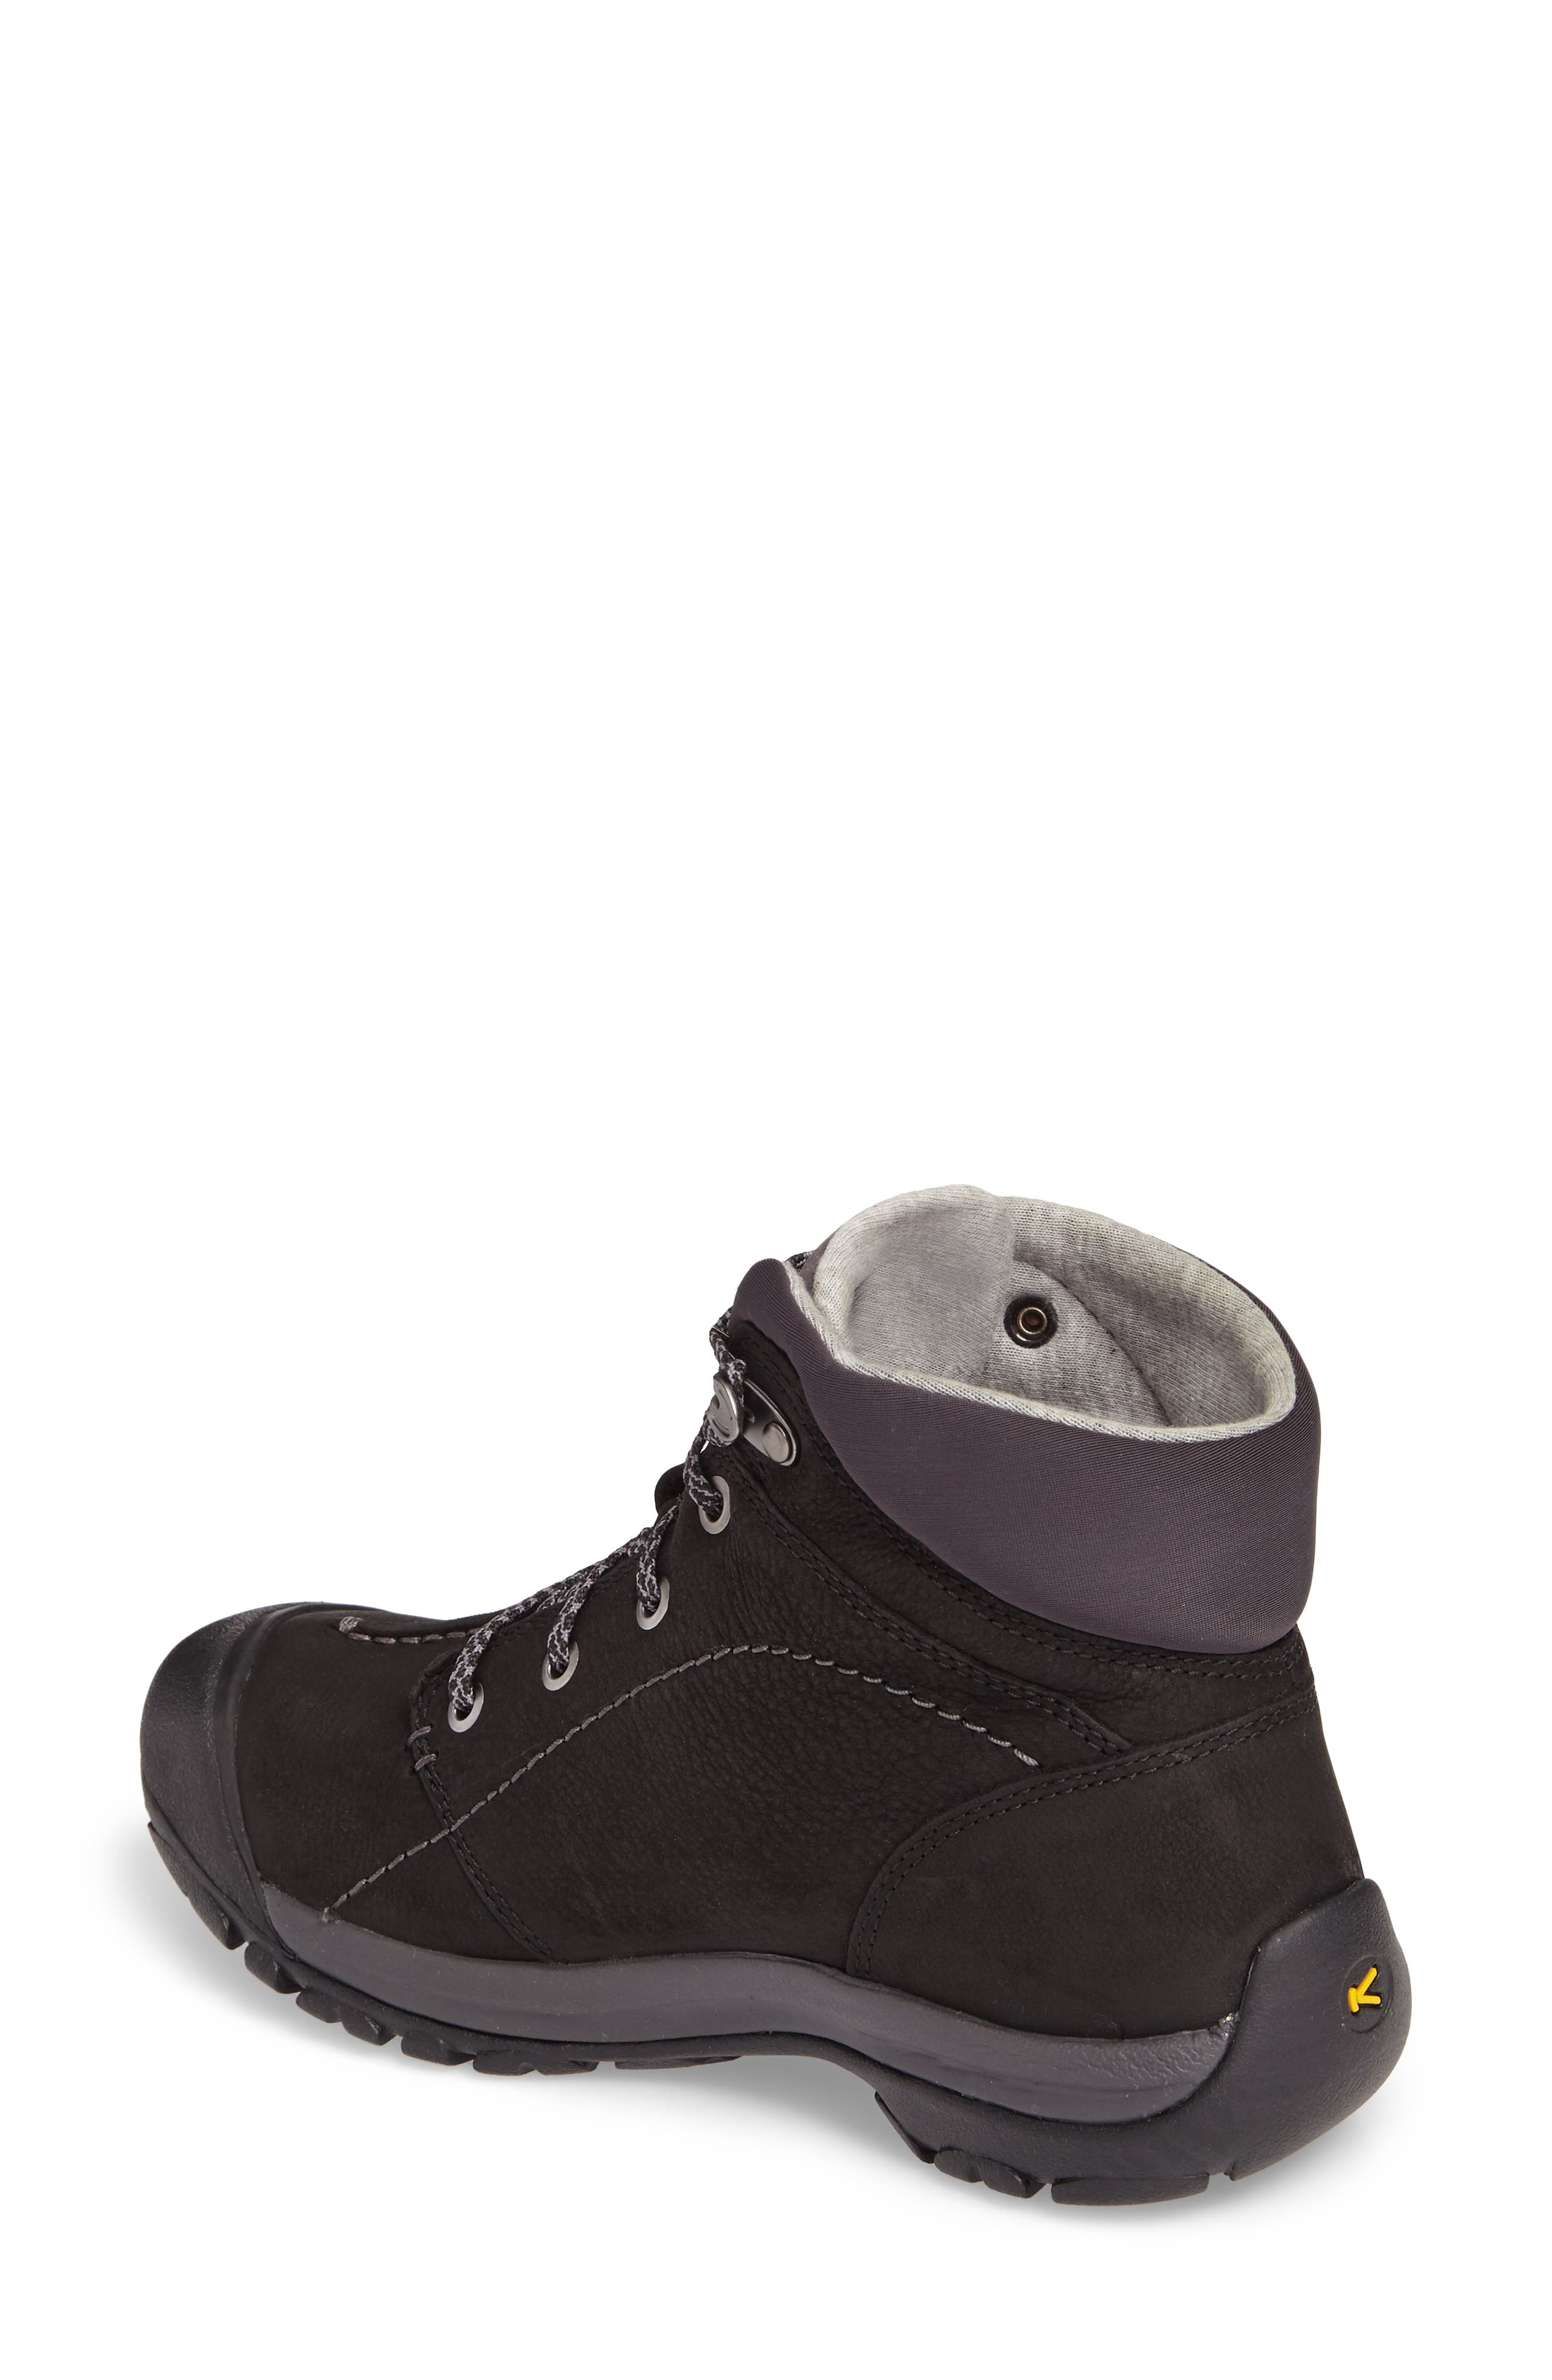 Kaci Waterproof Winter Boot,                             Alternate thumbnail 2, color,                             Black/ Magnet Leather